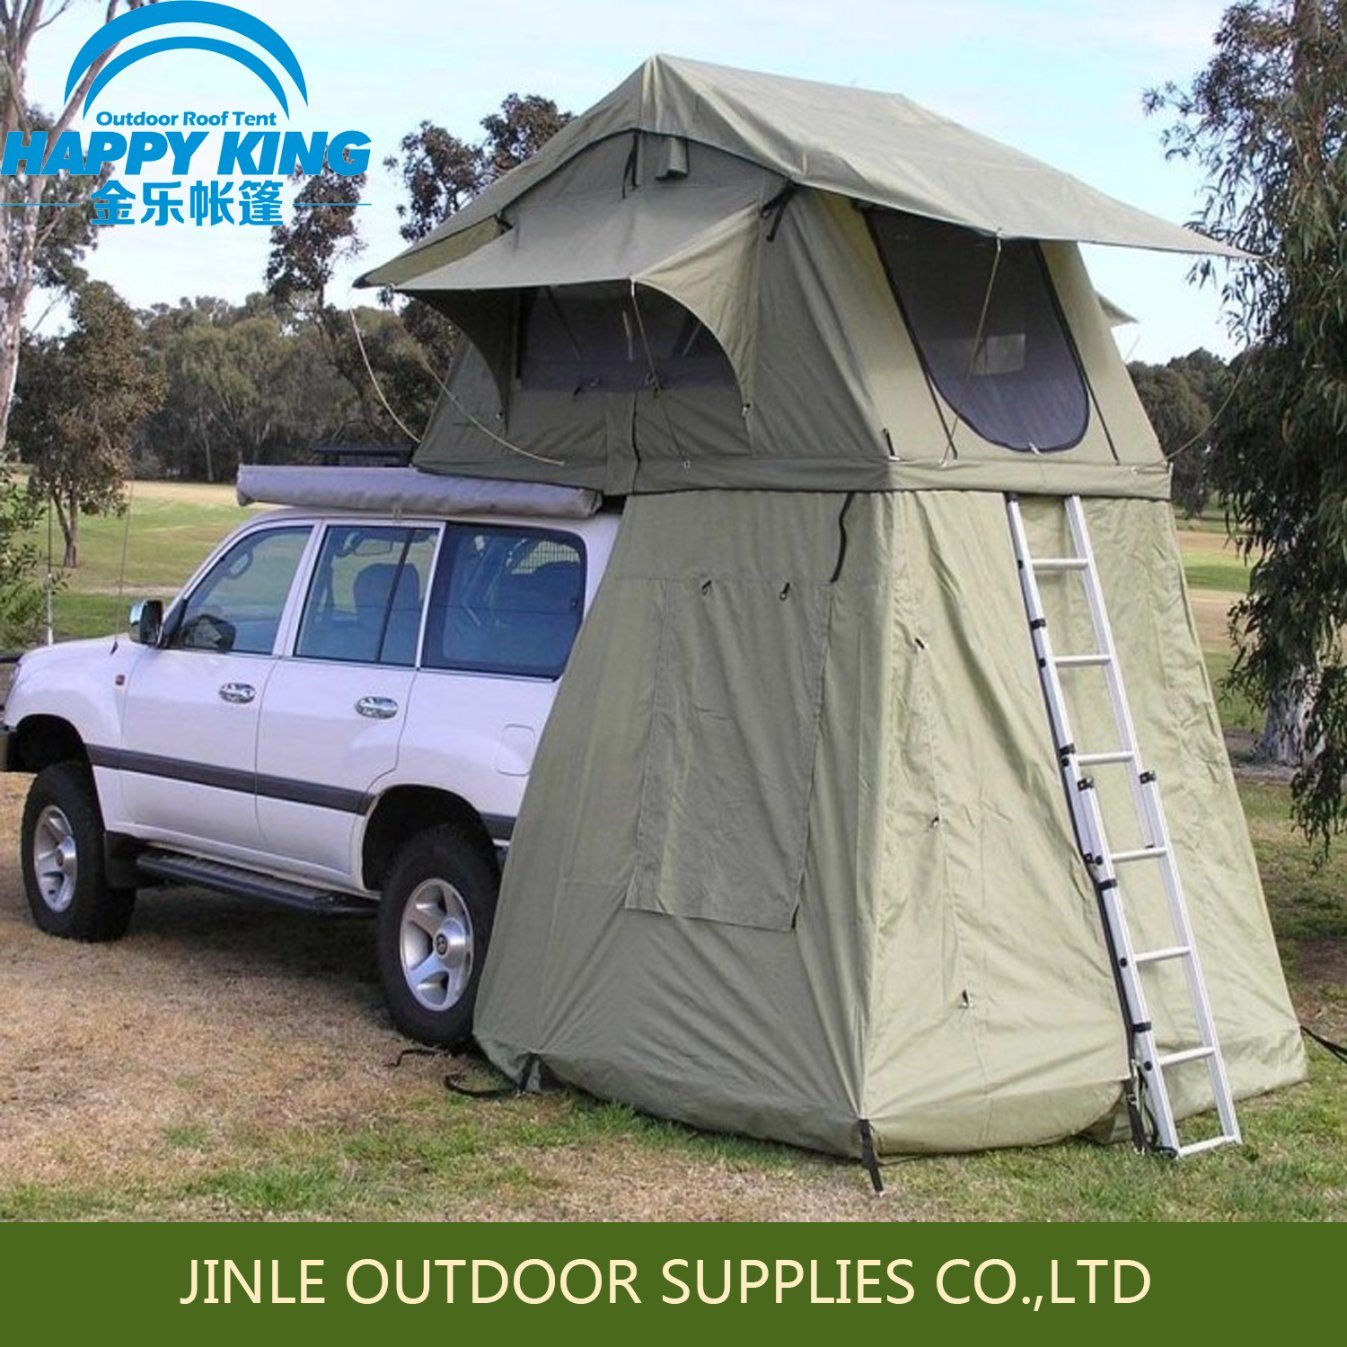 4Wd Awning Tent [hot item] car roof top tent 4wd awning house